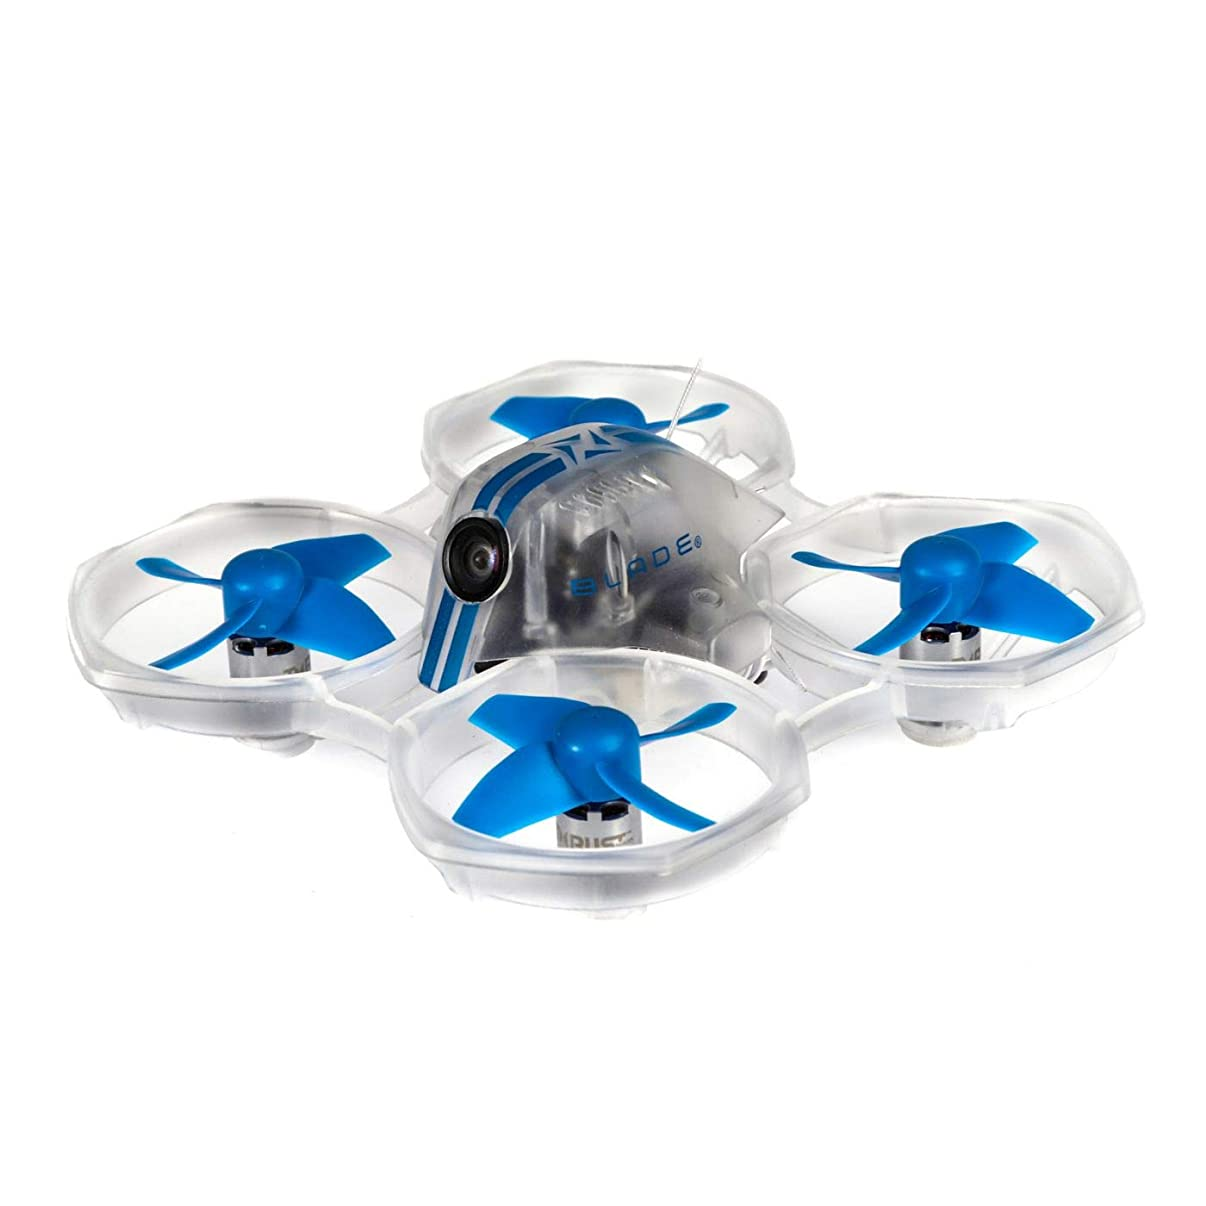 Blade Inductrix FPV BL BNF Basic RC Drone with Safe Technology, Blue